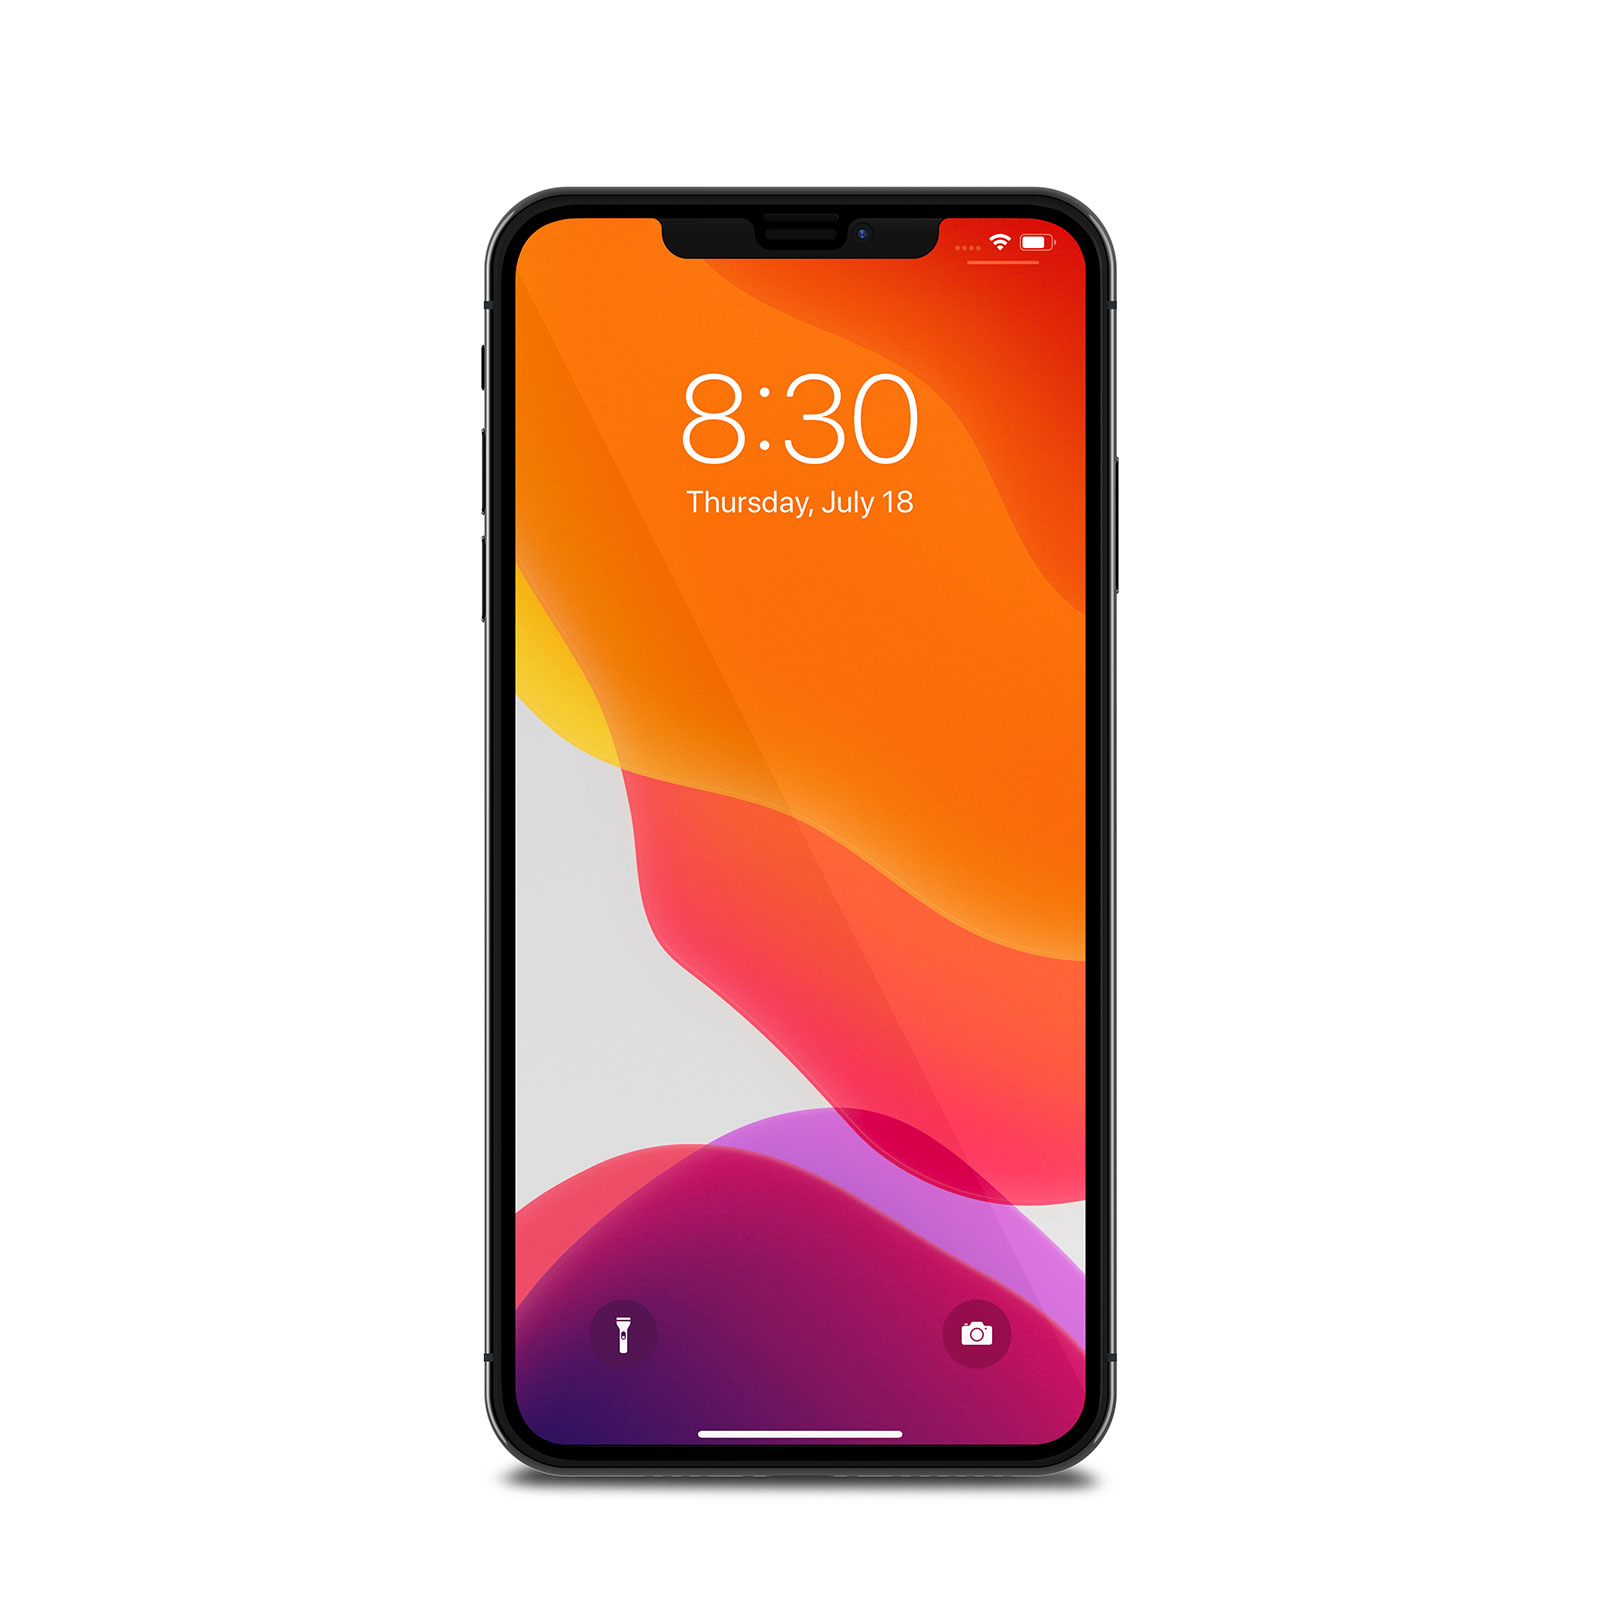 huge discount 4ae60 908bb IonGlass for iPhone XS Max